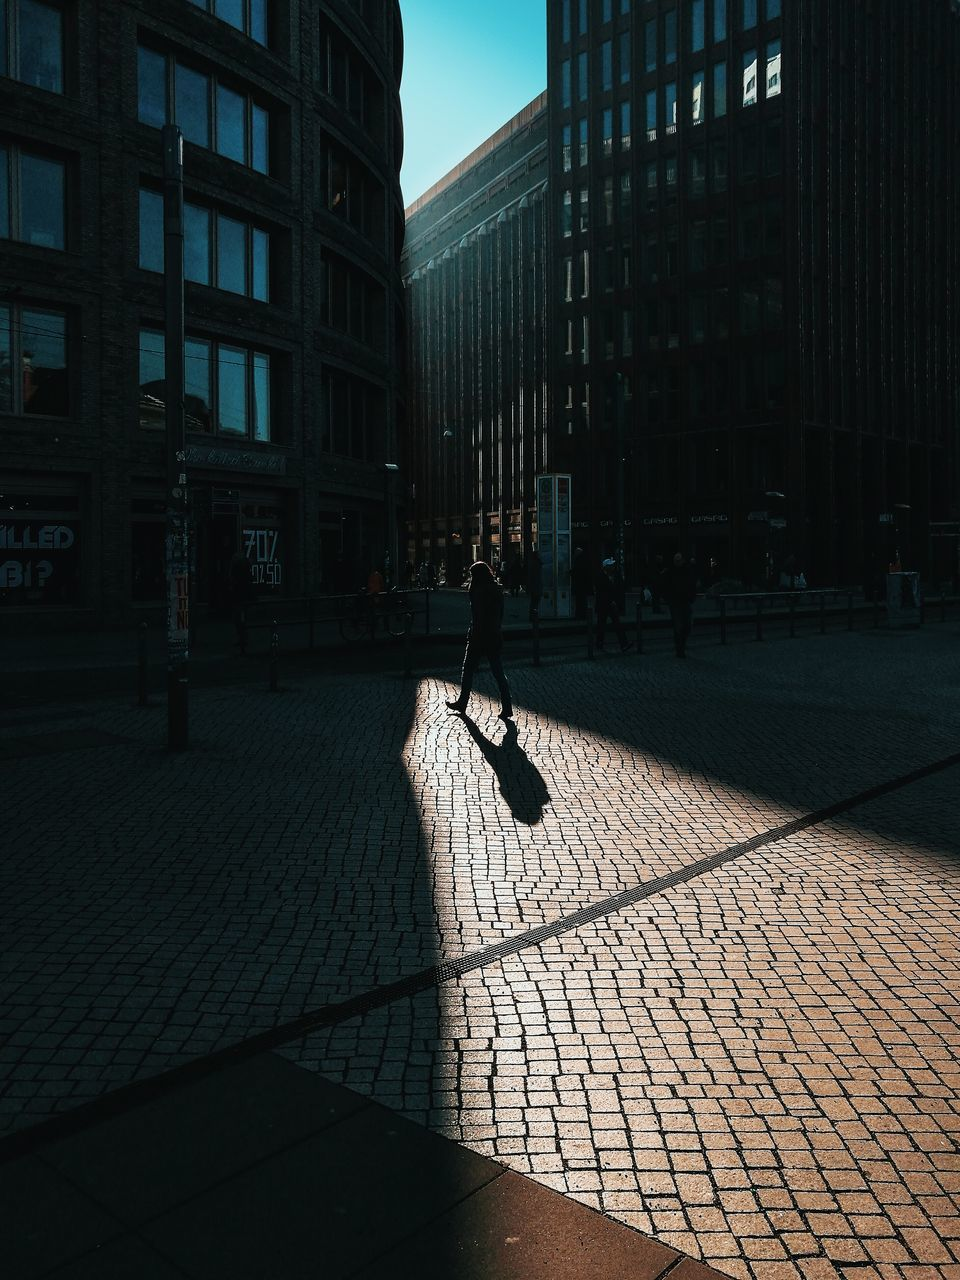 architecture, building exterior, city, built structure, full length, shadow, one person, city life, day, real people, outdoors, sunlight, skyscraper, travel destinations, people